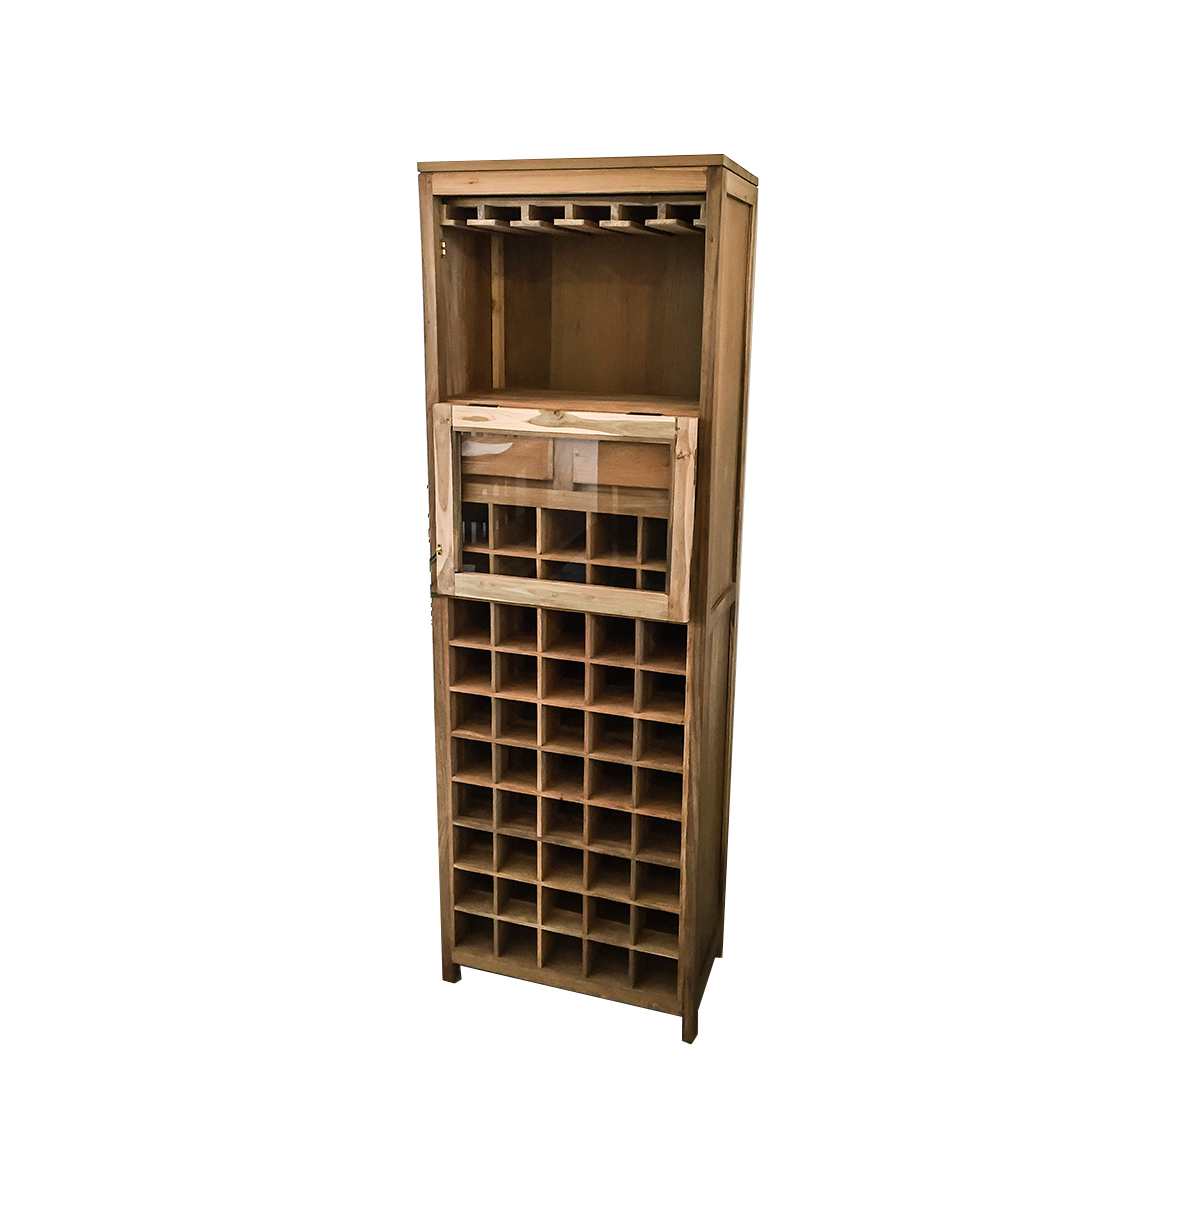 Wood Wine Storage Reclaimed Wood Wine Rack Solid Handmade Reclaimed Teak